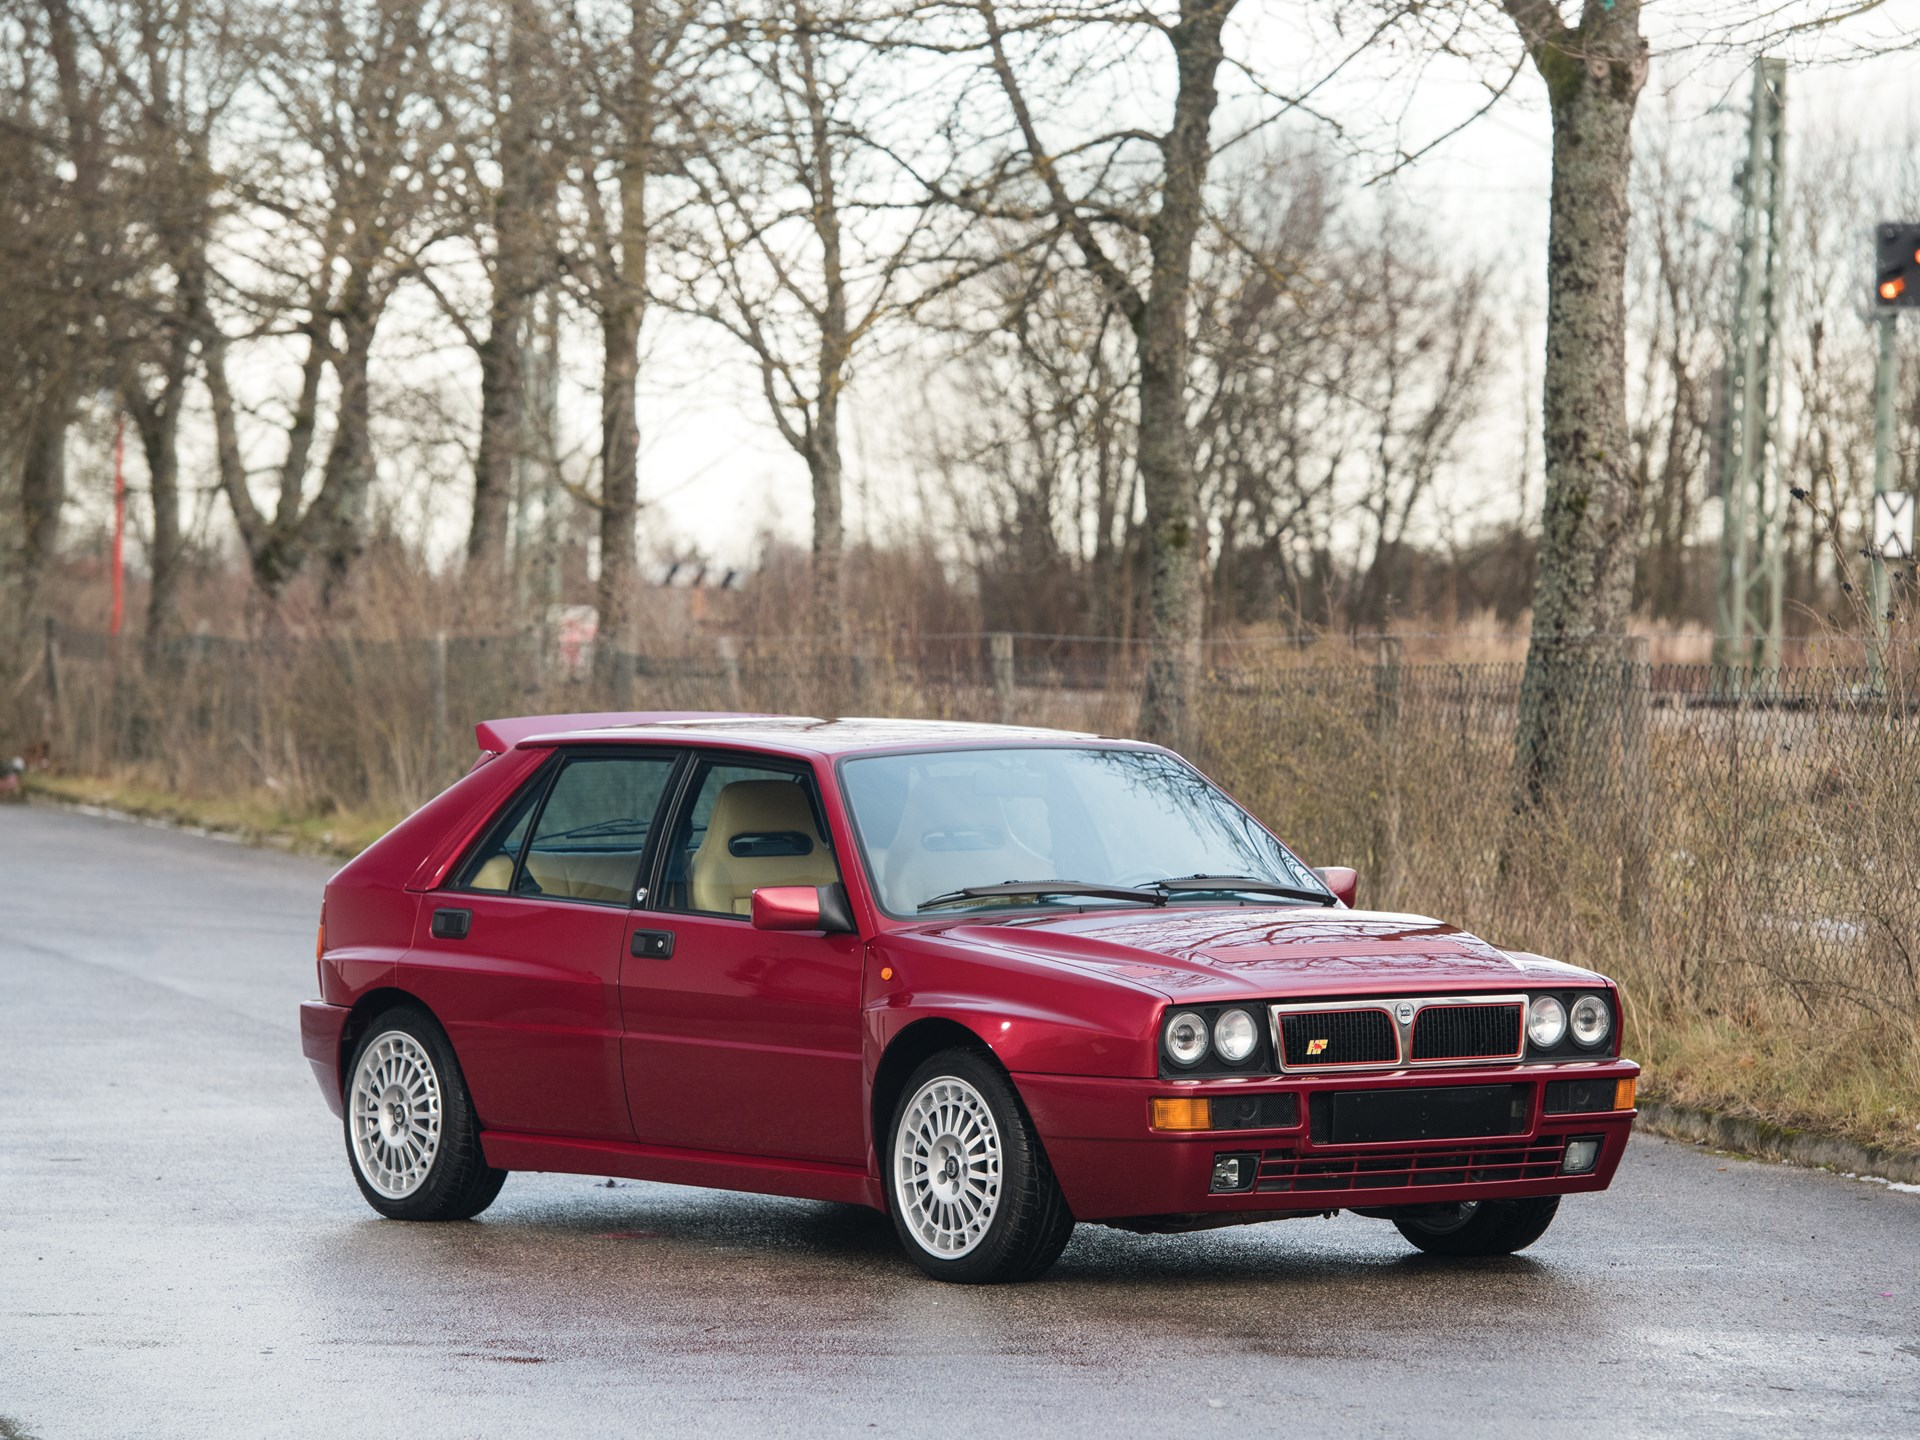 rm sotheby 39 s 1995 lancia delta hf integrale evoluzione ii 39 dealers collection 39 paris 2018. Black Bedroom Furniture Sets. Home Design Ideas